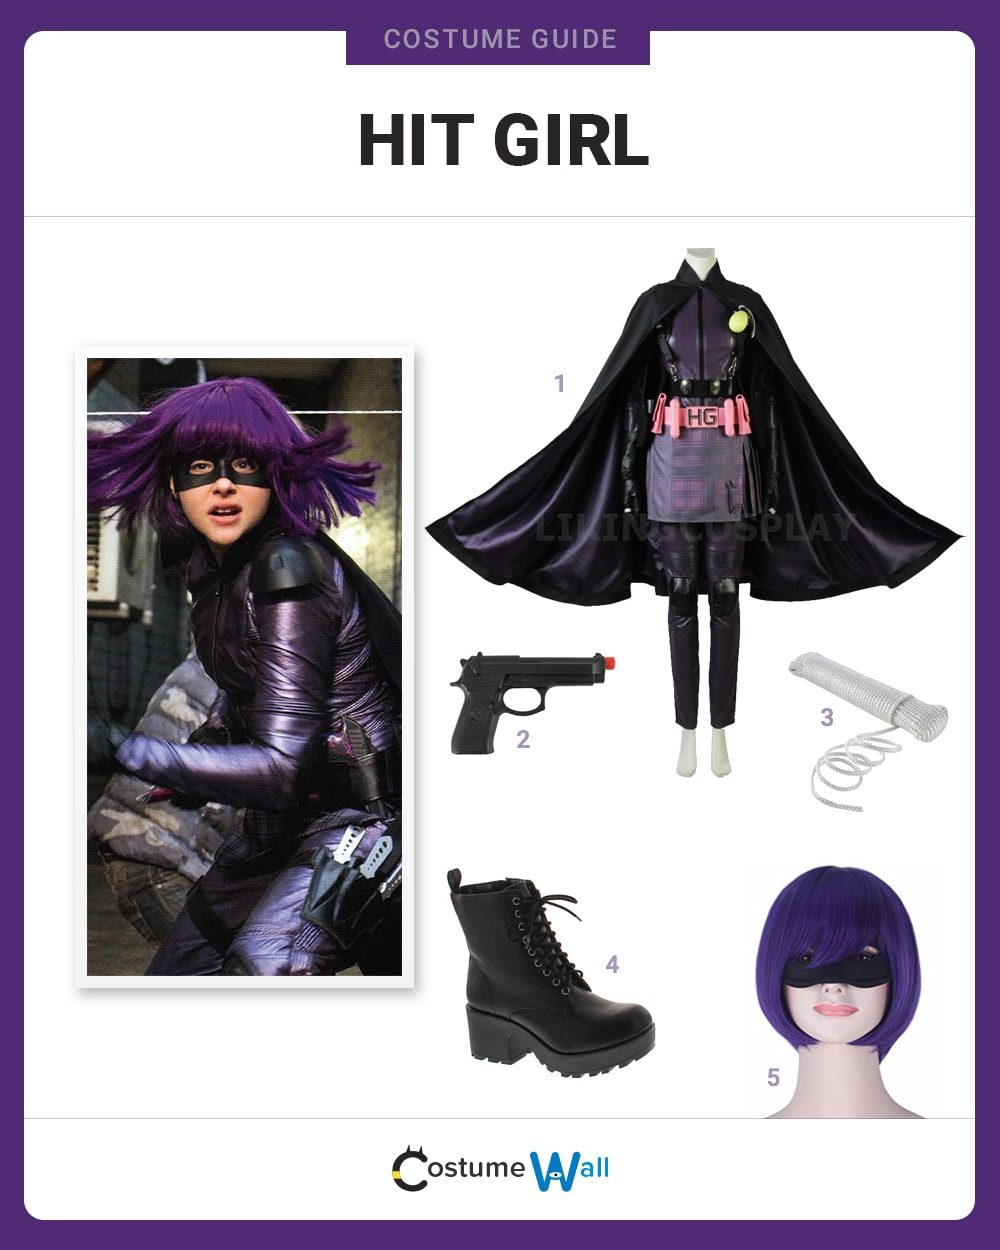 Hit-Girl Costume Guide